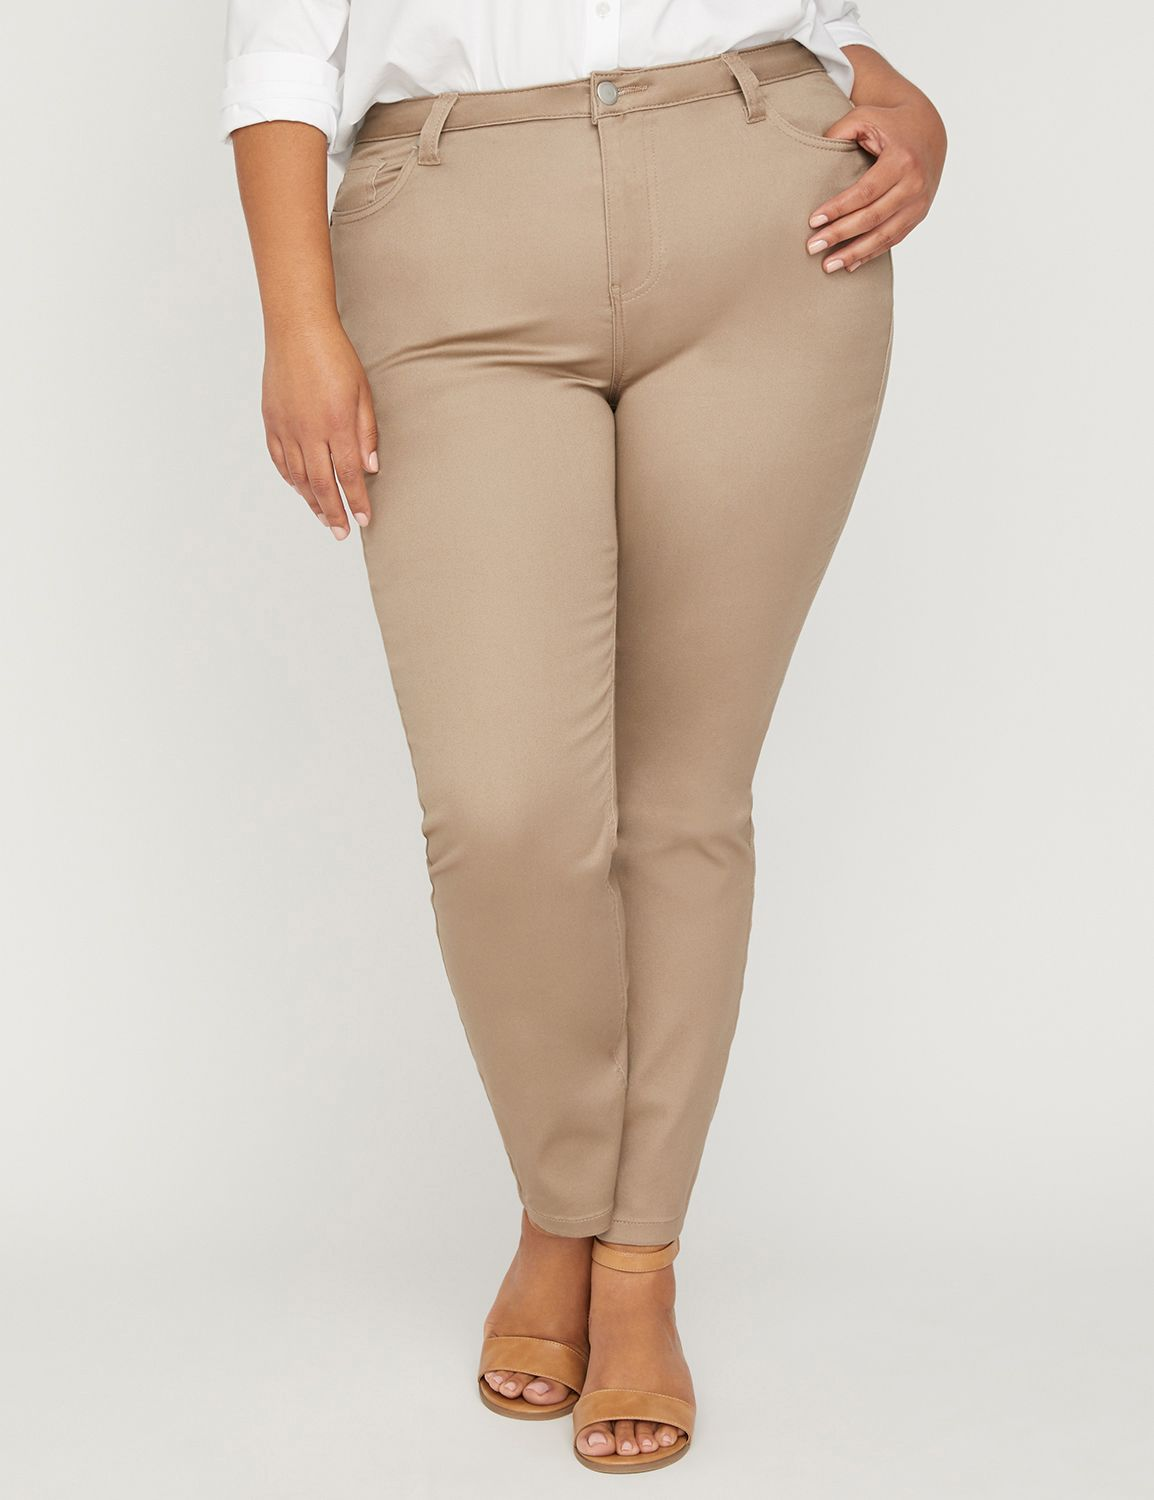 Modern Sateen Stretch Pant Done MP-300083817